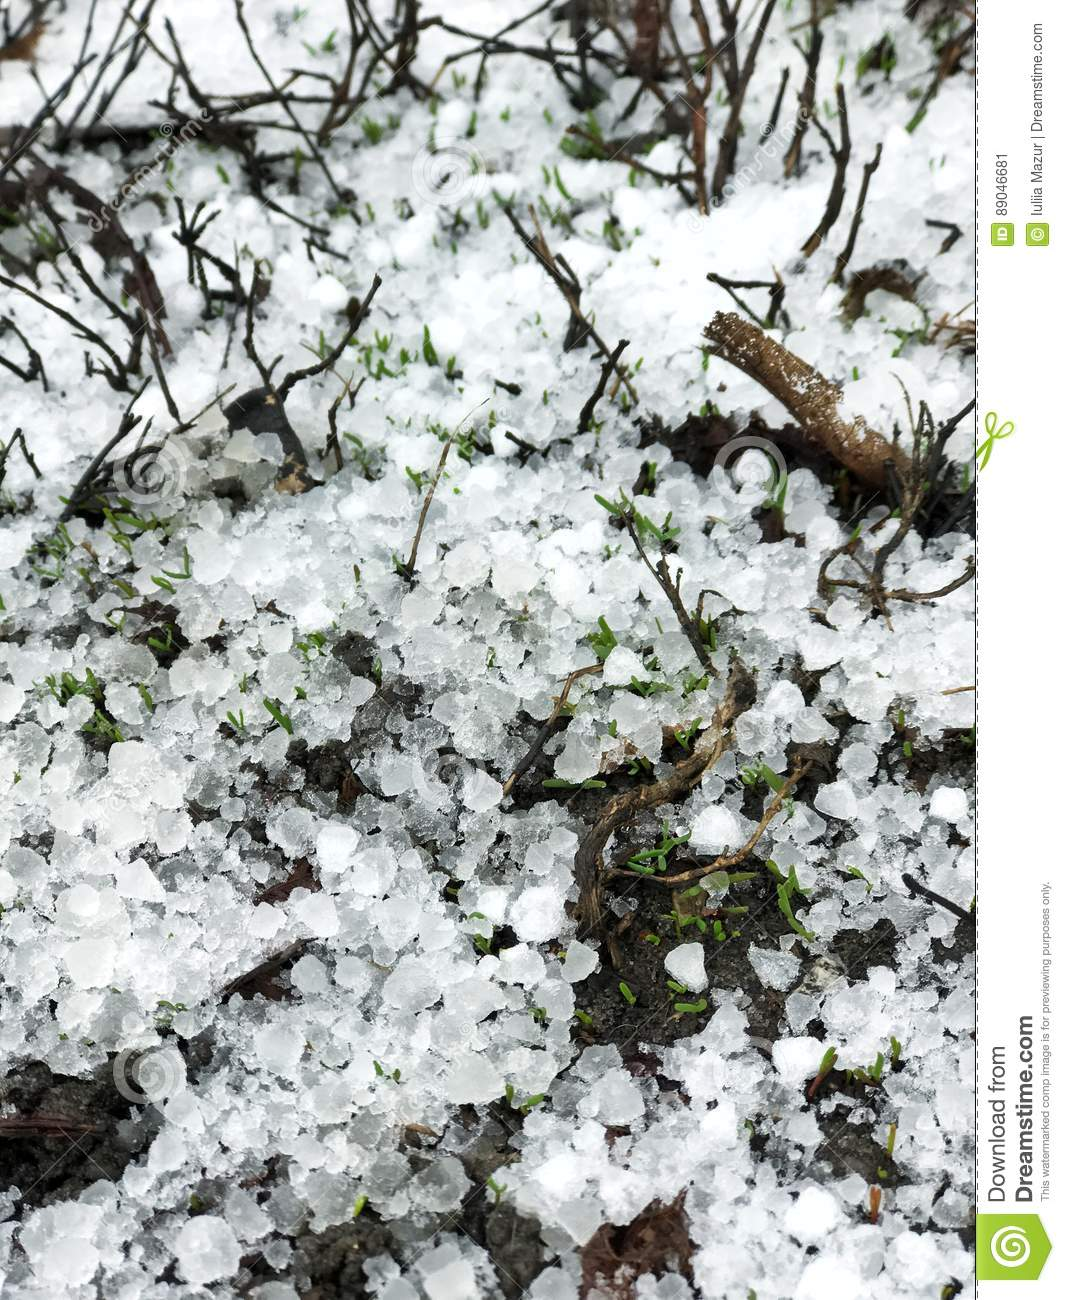 Late snow with hailstones on the ground